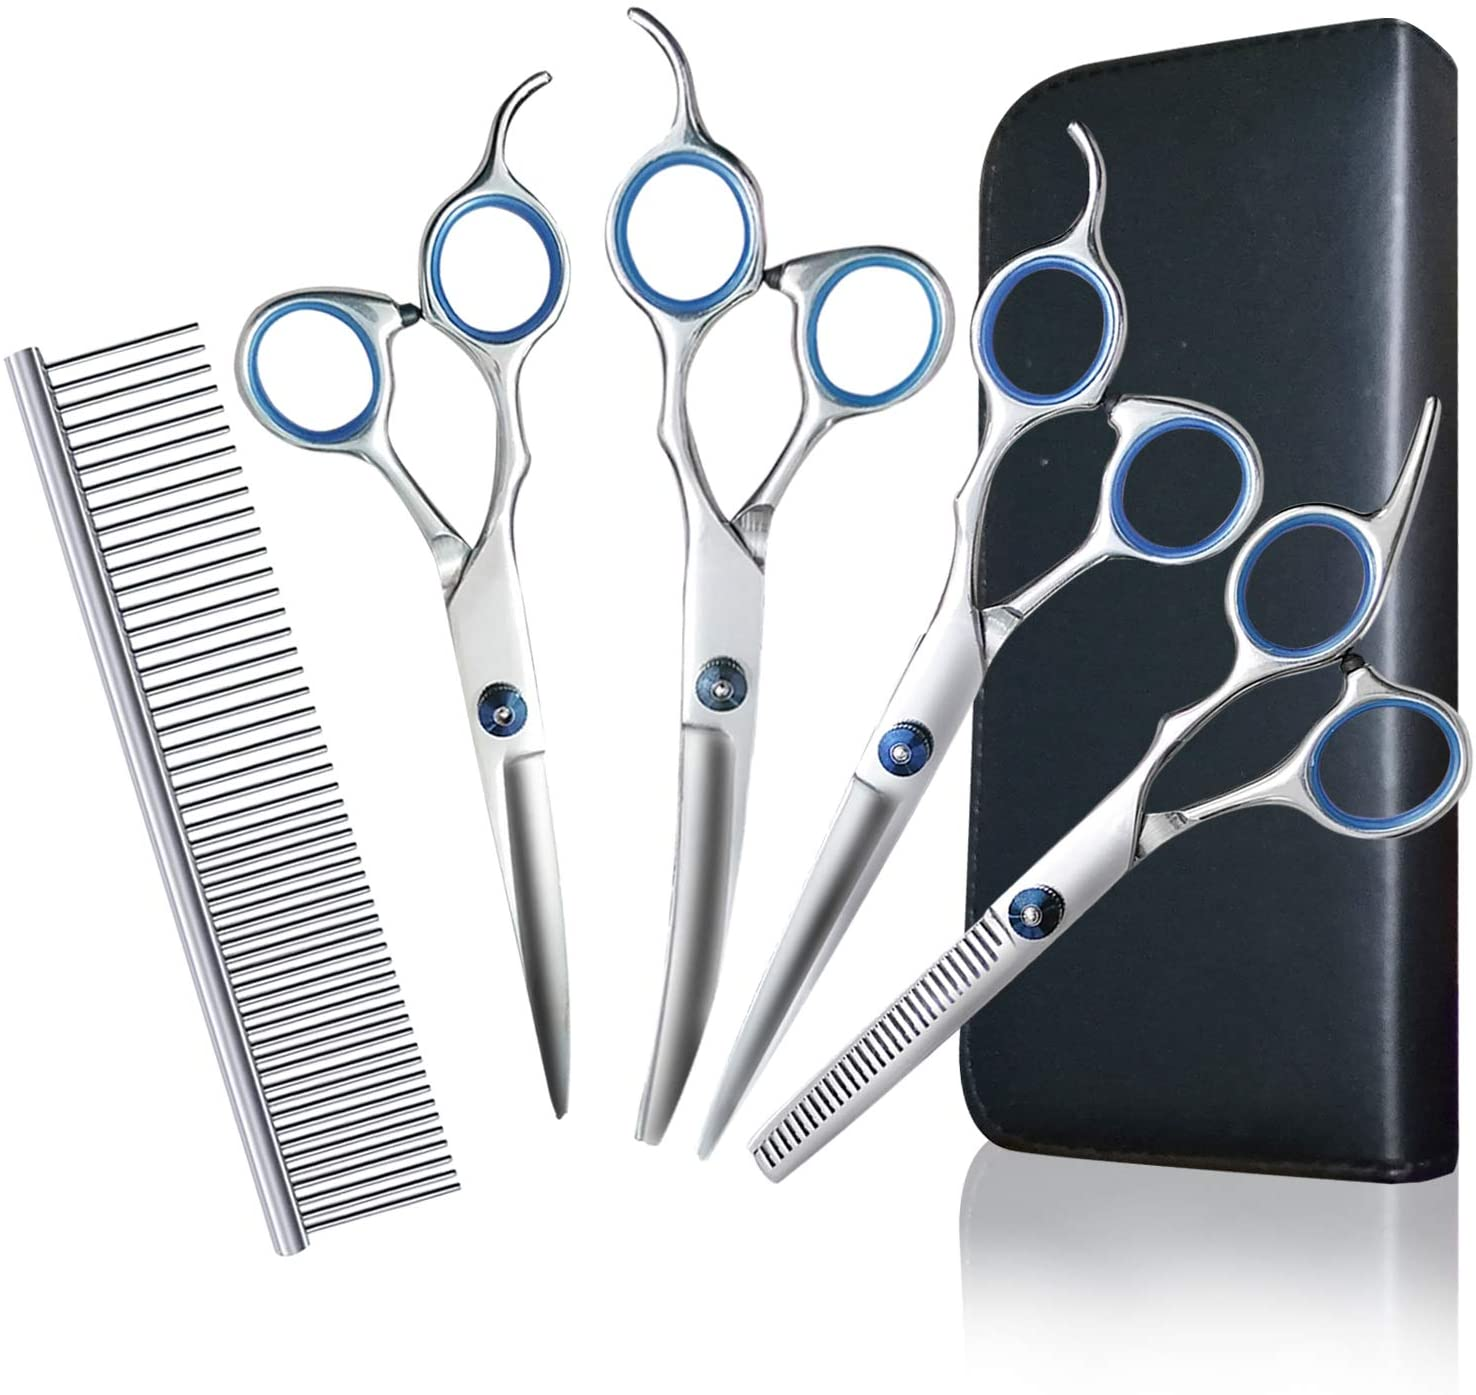 Dog Grooming Scissors Kit Stainless Steel Pet Trimmer Kit - Professional Thinning, Straight, Curved Shears and Comb for Long Short Hair Fur for Dog Cat Pet - 5 in 1 Cat Grooming Scissors Set(7.0 inch)